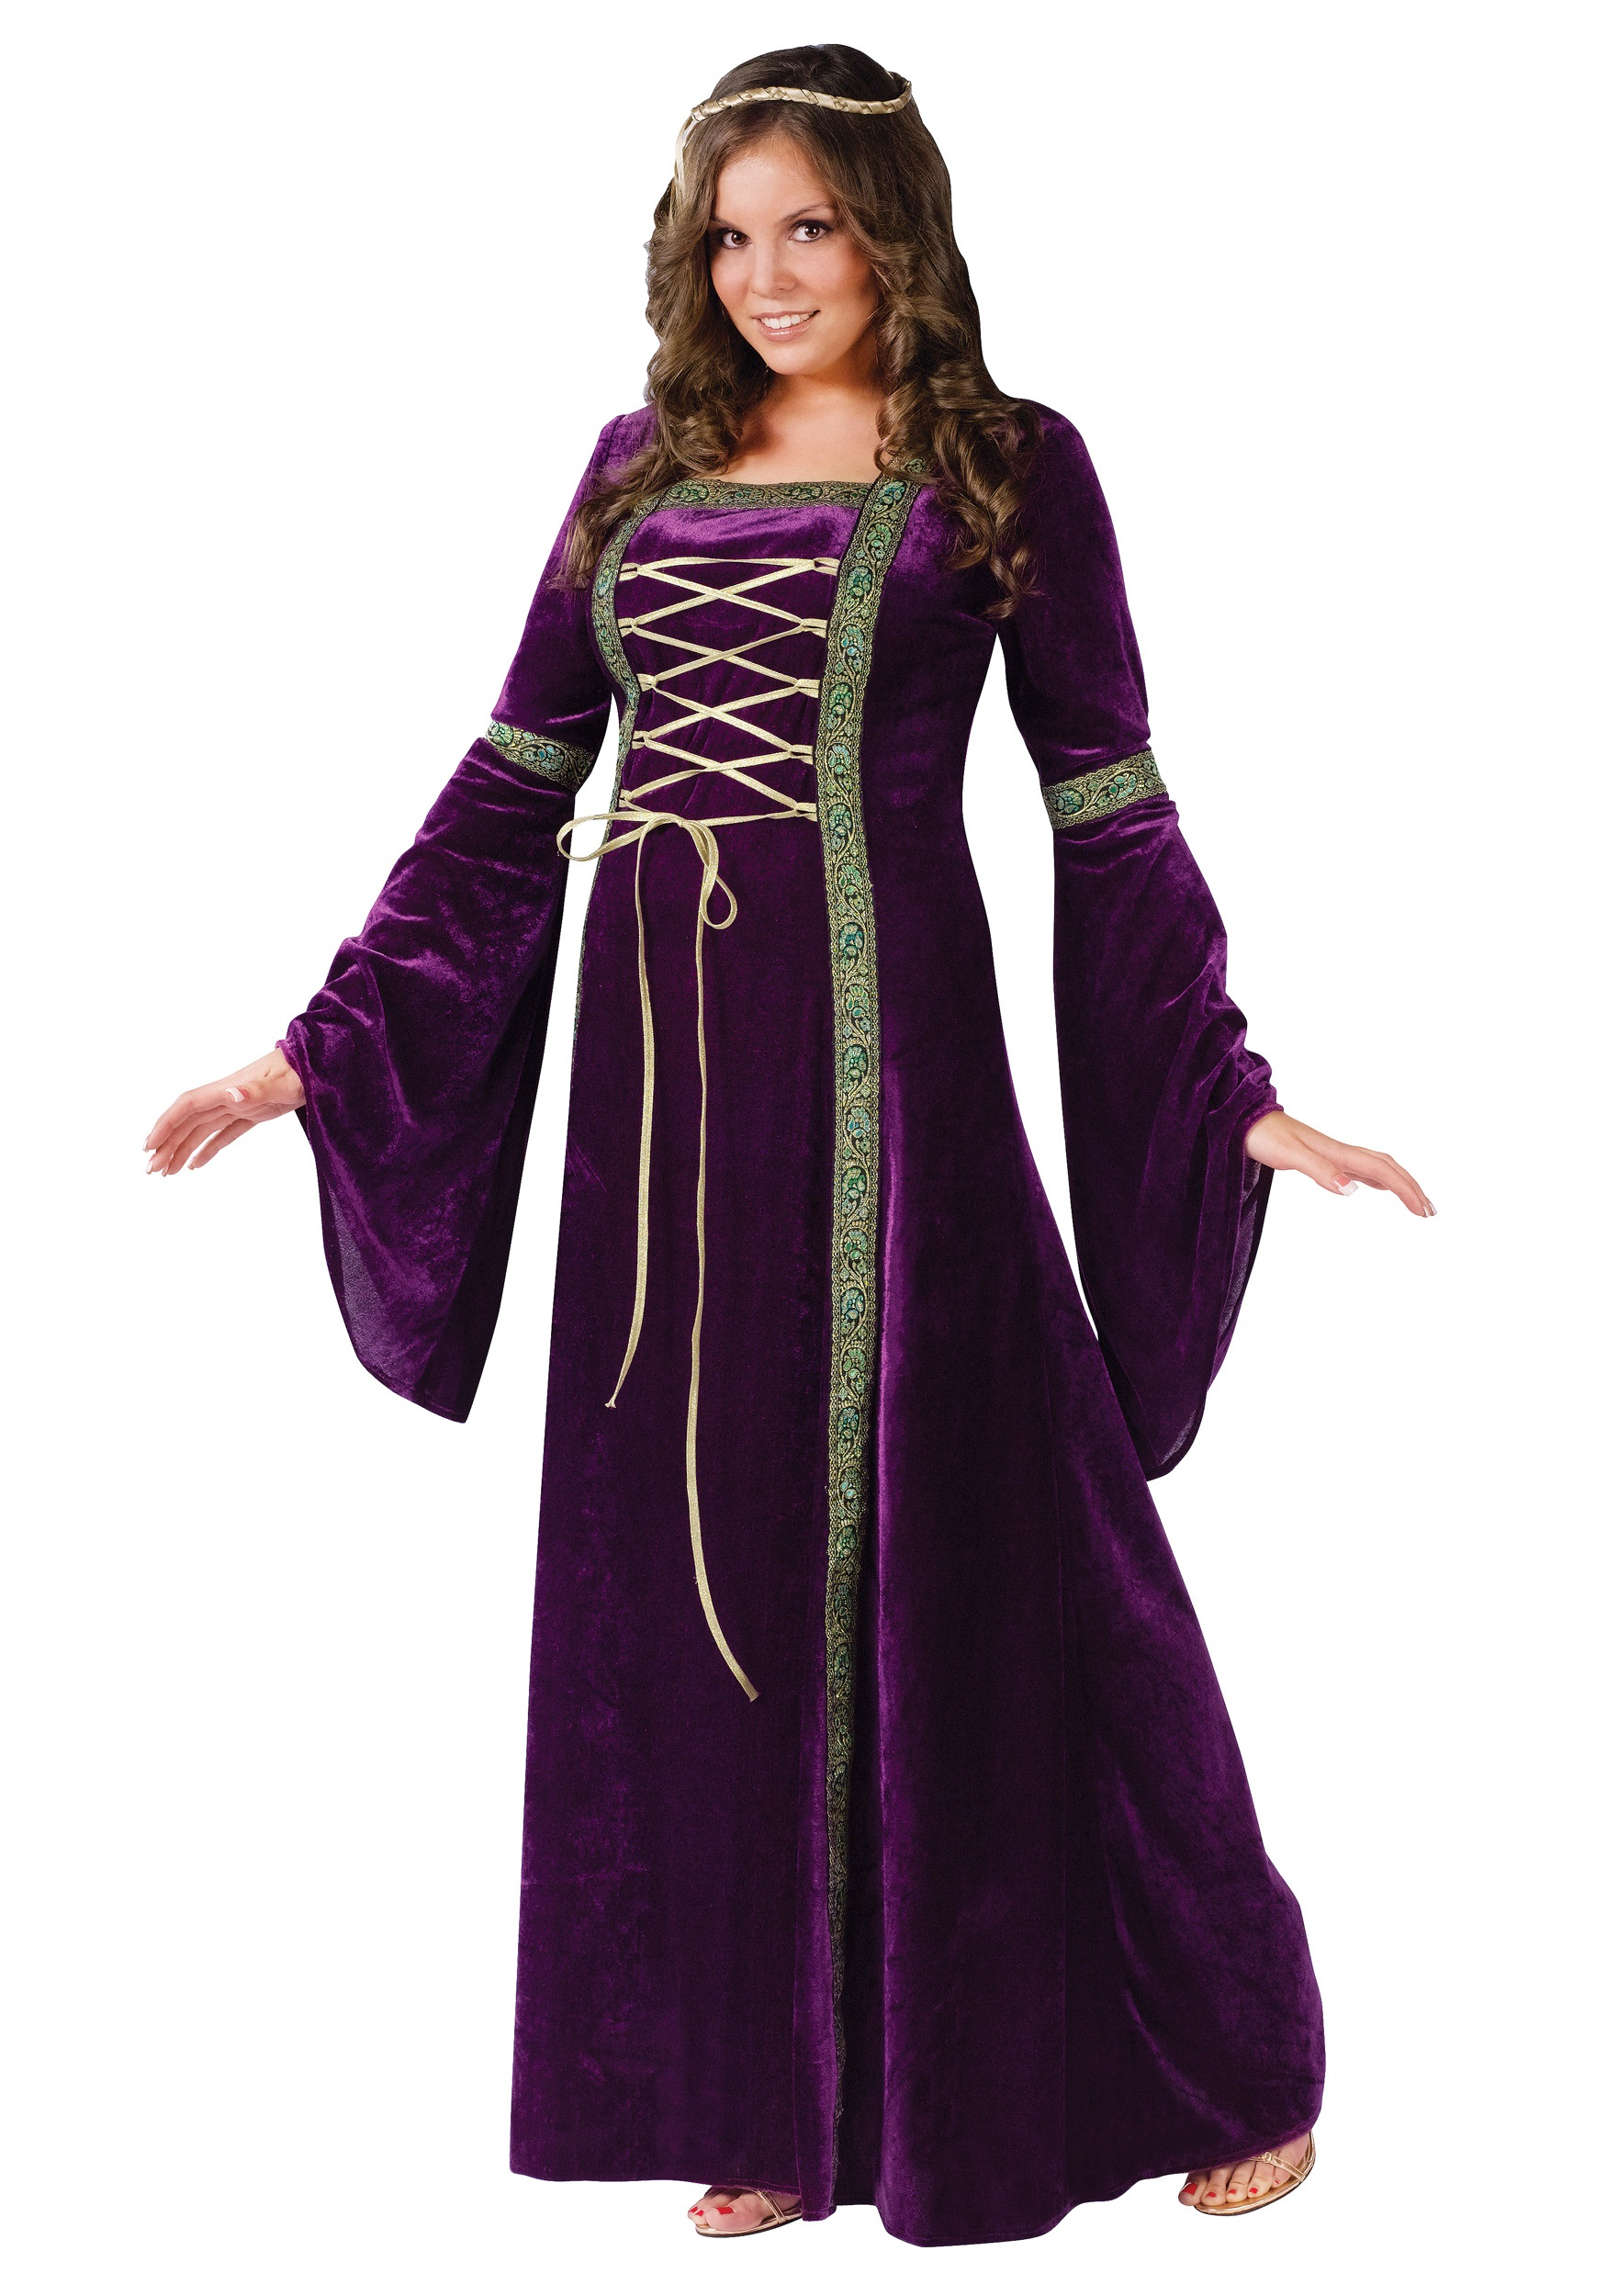 Plus Size Renaissance Lady Costume  sc 1 st  Halloween Costumes : renaissance girl costume  - Germanpascual.Com